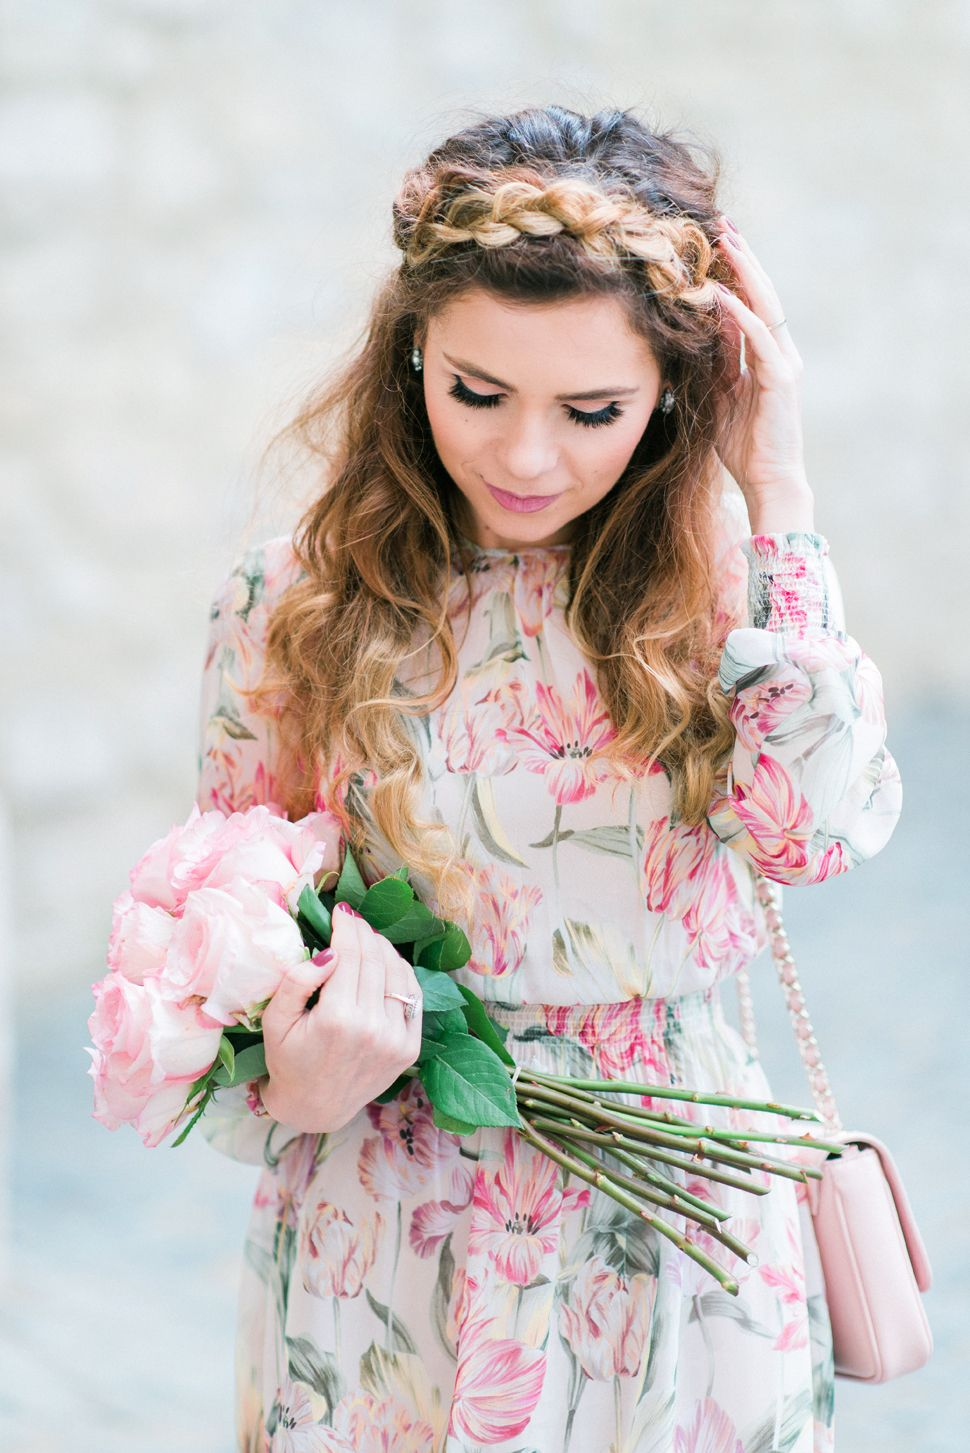 a493f68ae8343 Half crown braid hairstyle. Floral midi dress. Bouquet of roses ...